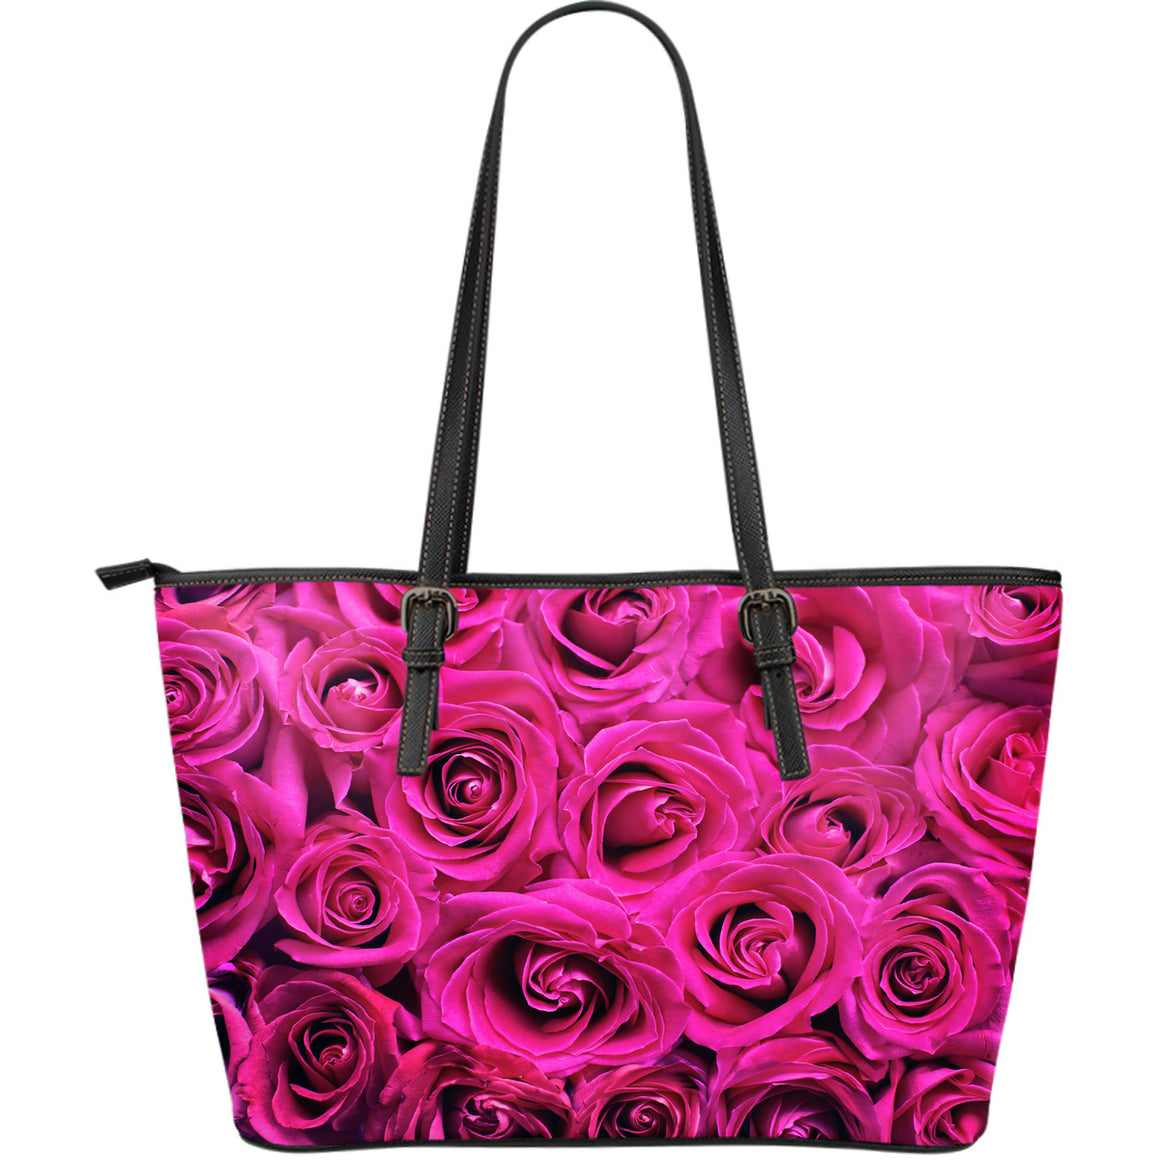 Rose Blossoms Large Leather Tote